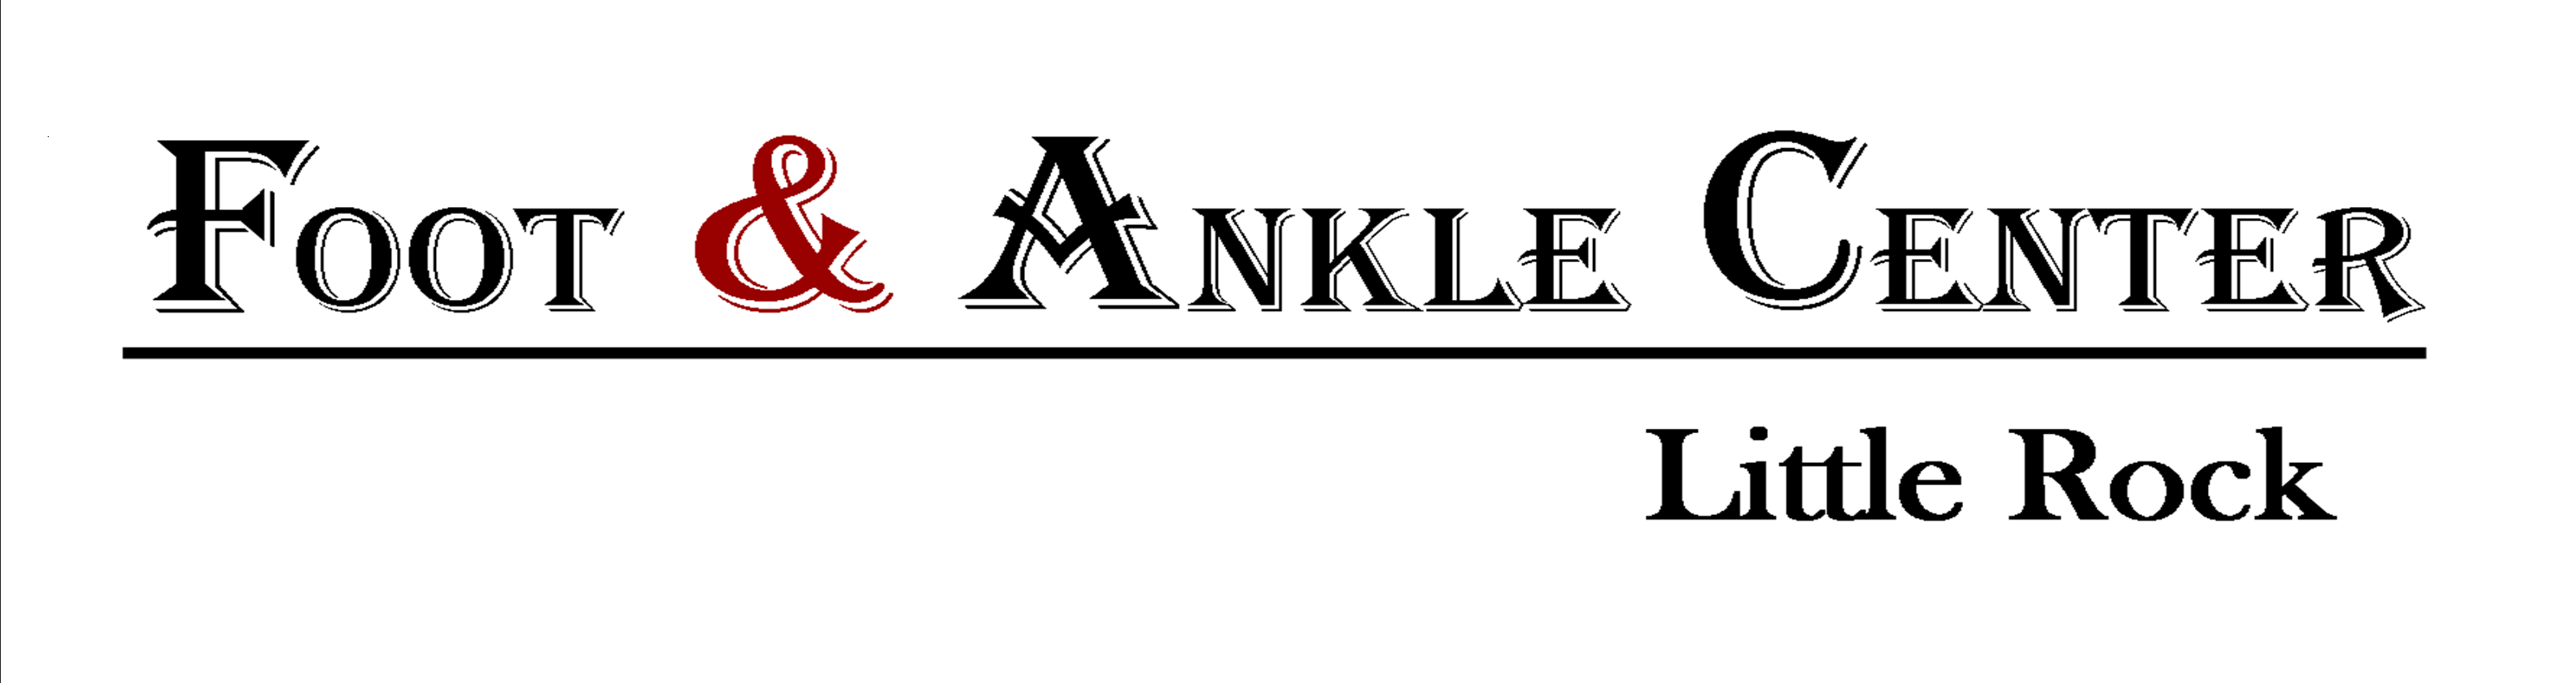 Foot & Ankle Center of Little Rock